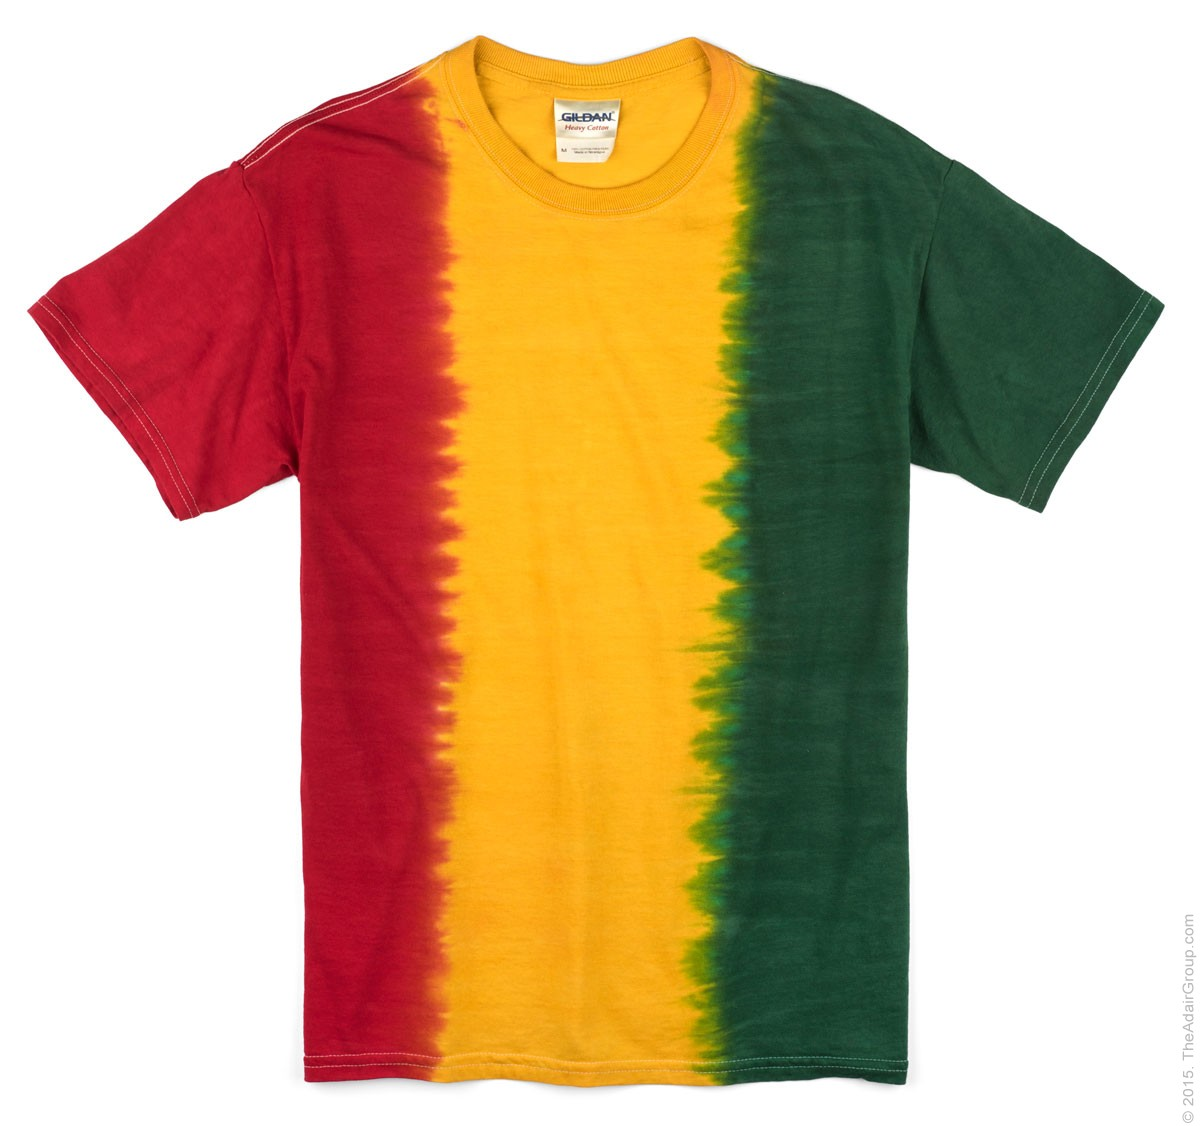 Tie-Dye T-Shirts for Adults at Discount Prices - The Adair Group